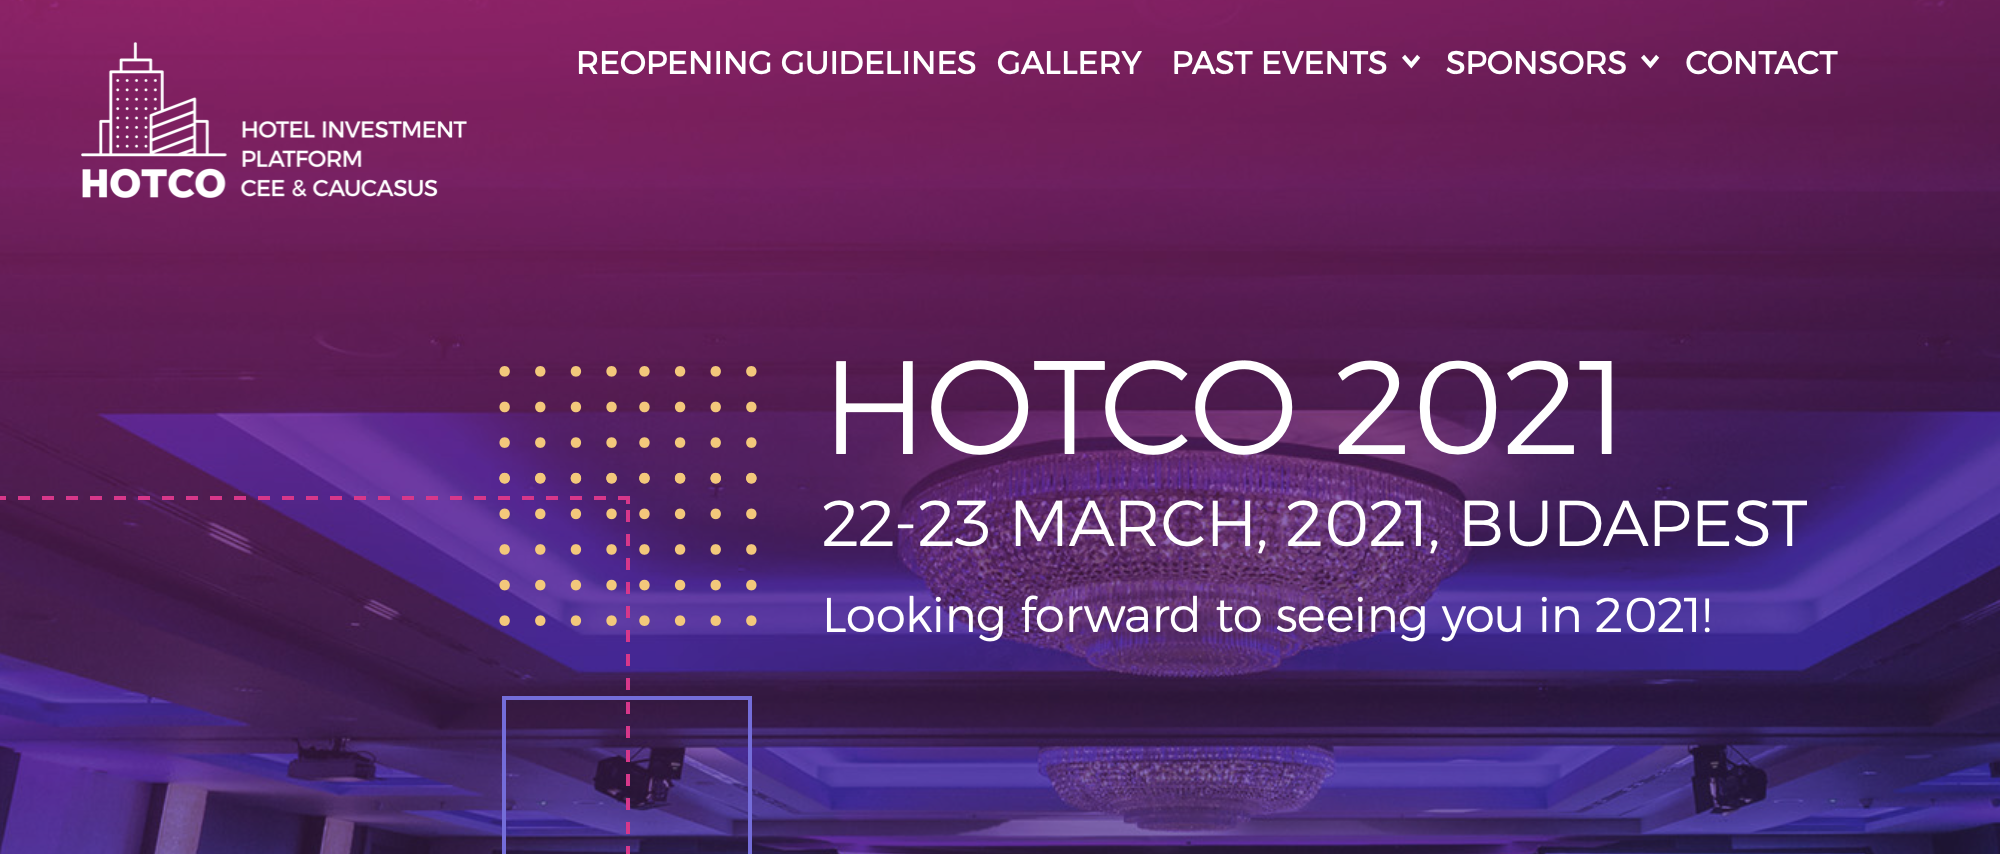 HOTCO announces dates for live meeting in 2021